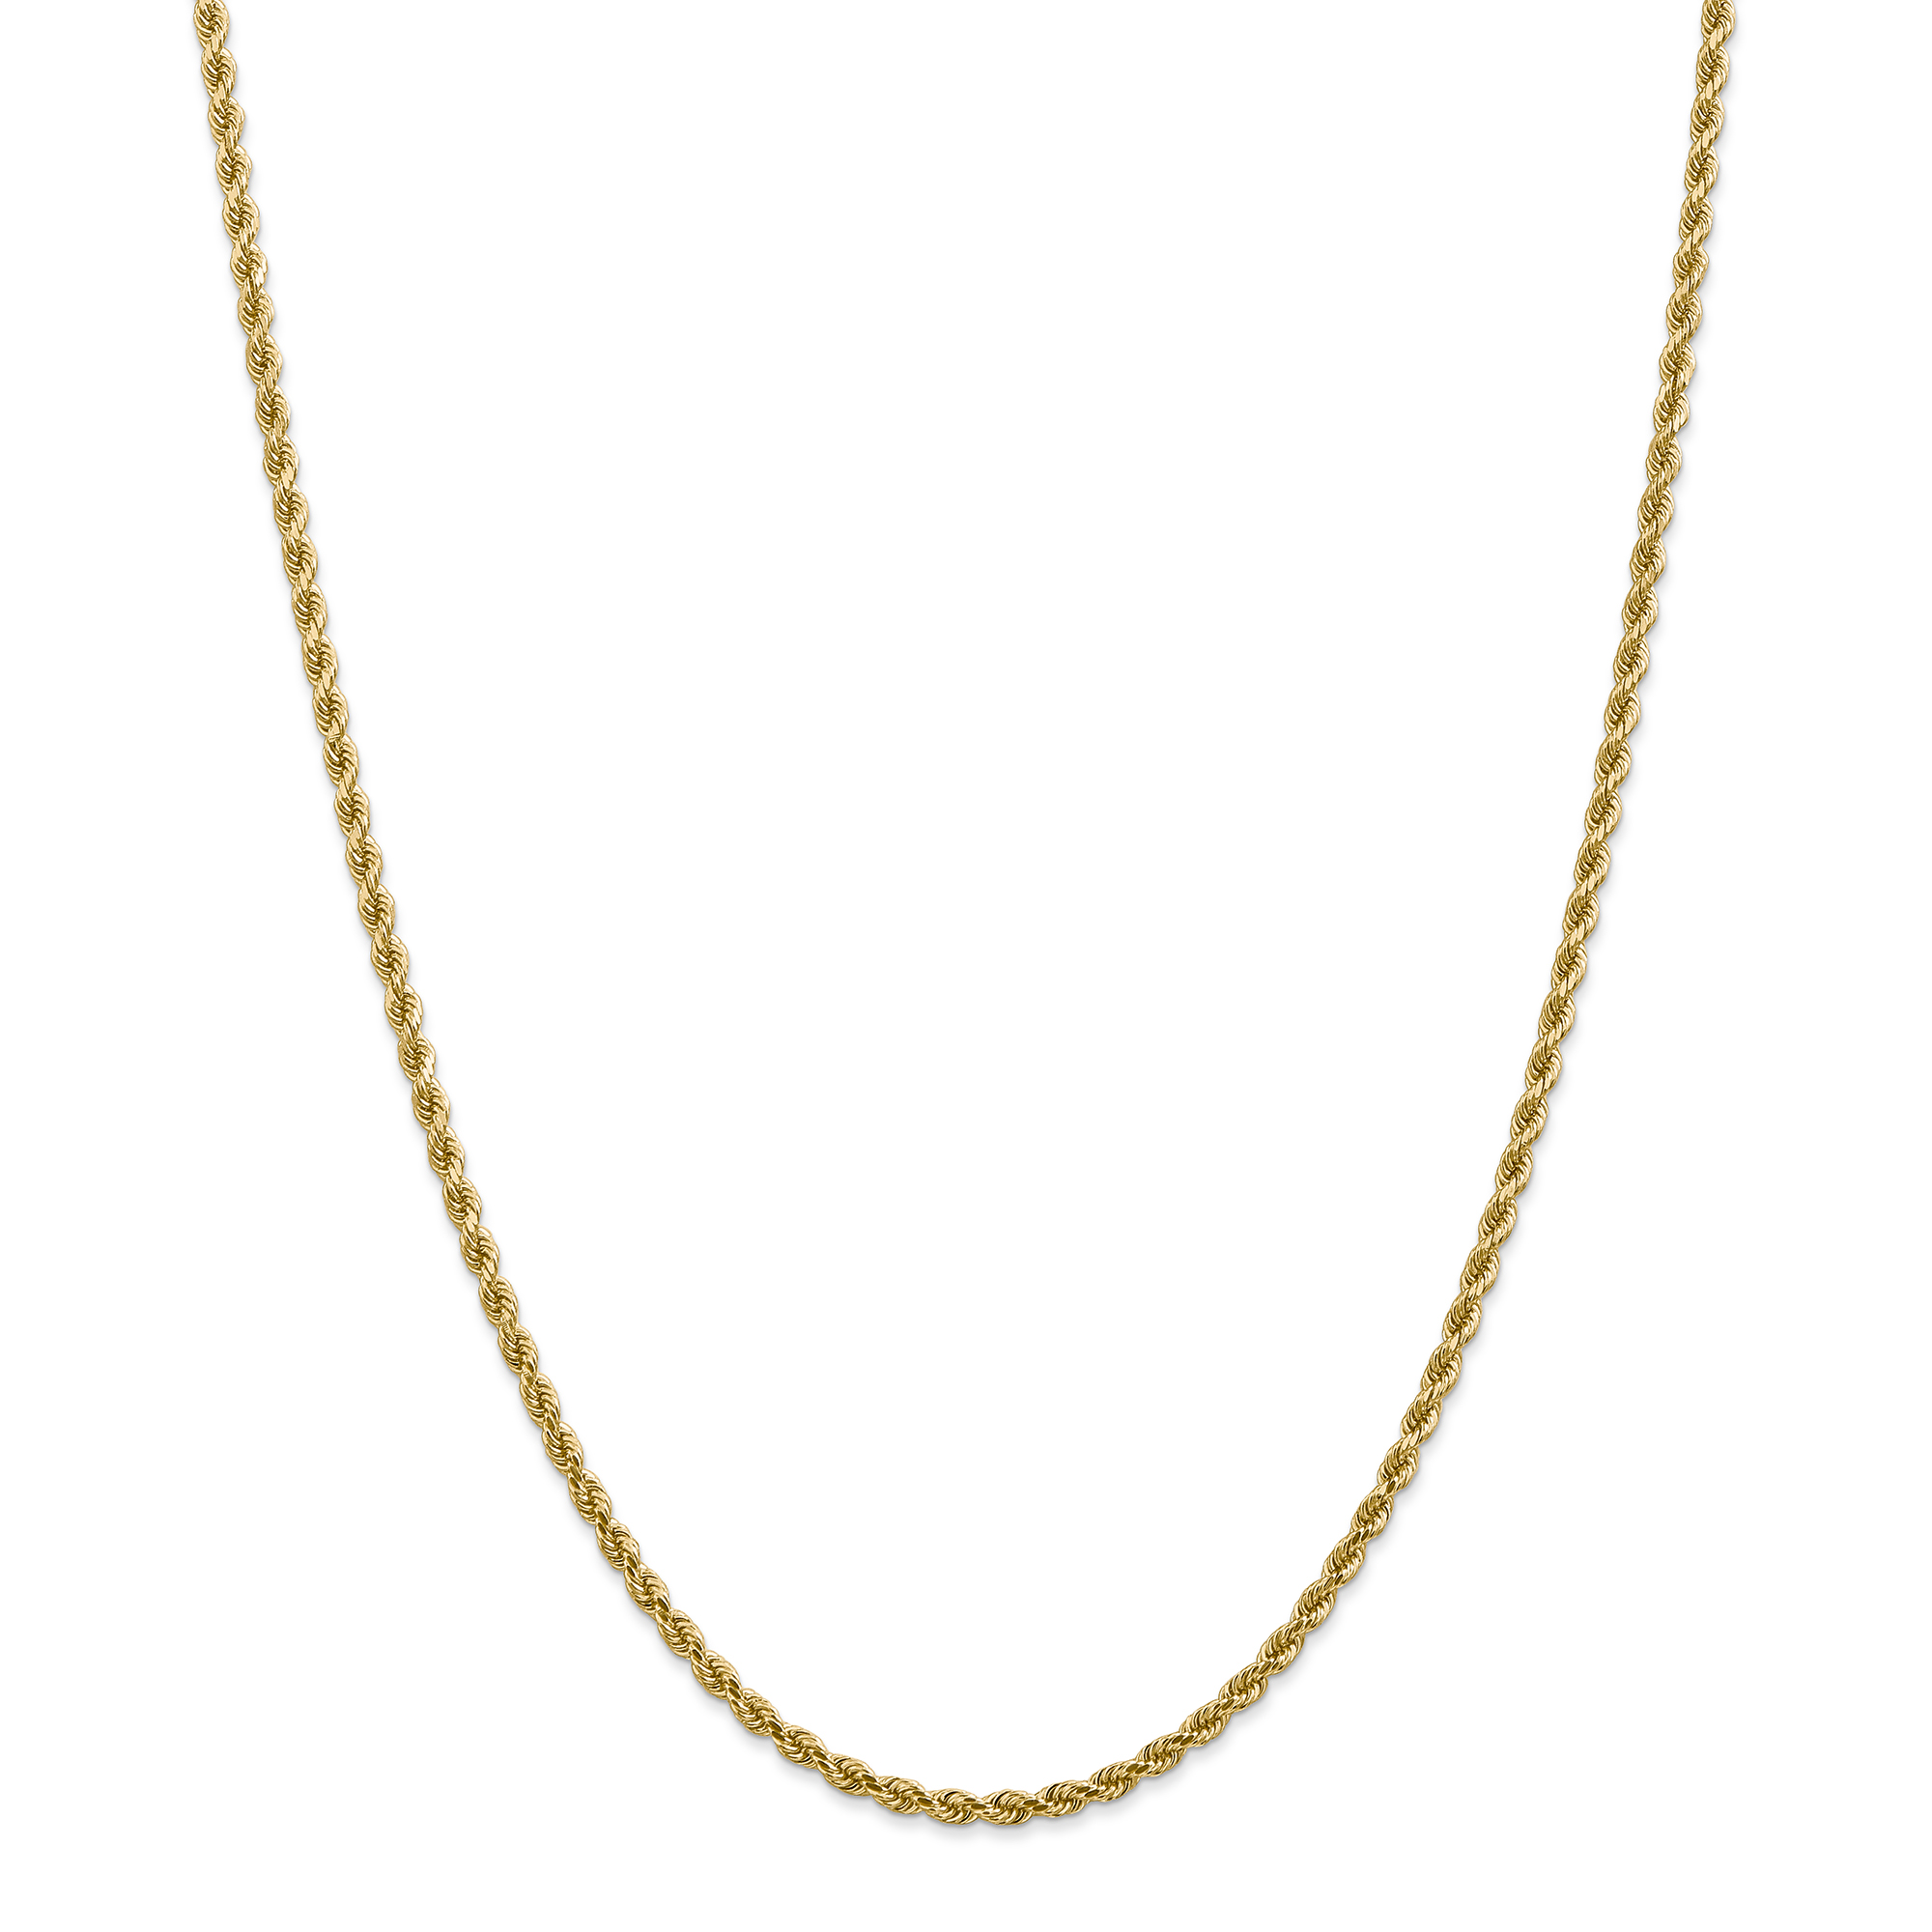 14K Yellow Gold 2.75mm Diamond Cut Rope With Lobster Clasp Chain 18 IN - image 5 of 5